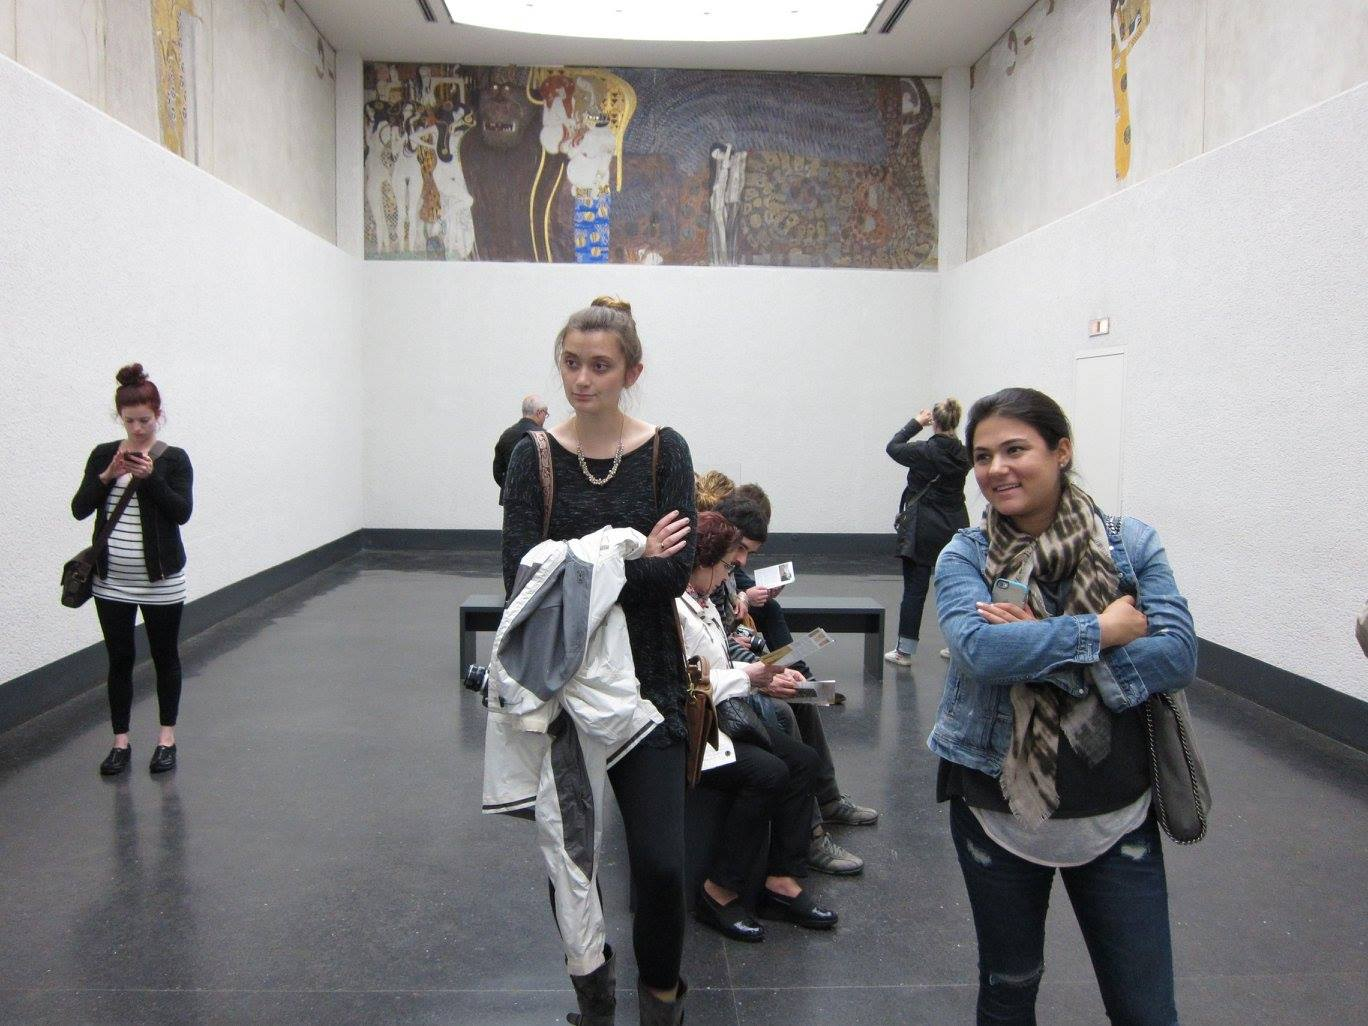 Sarah Johns and Megan Goldman in the Secession Building, Vienna.